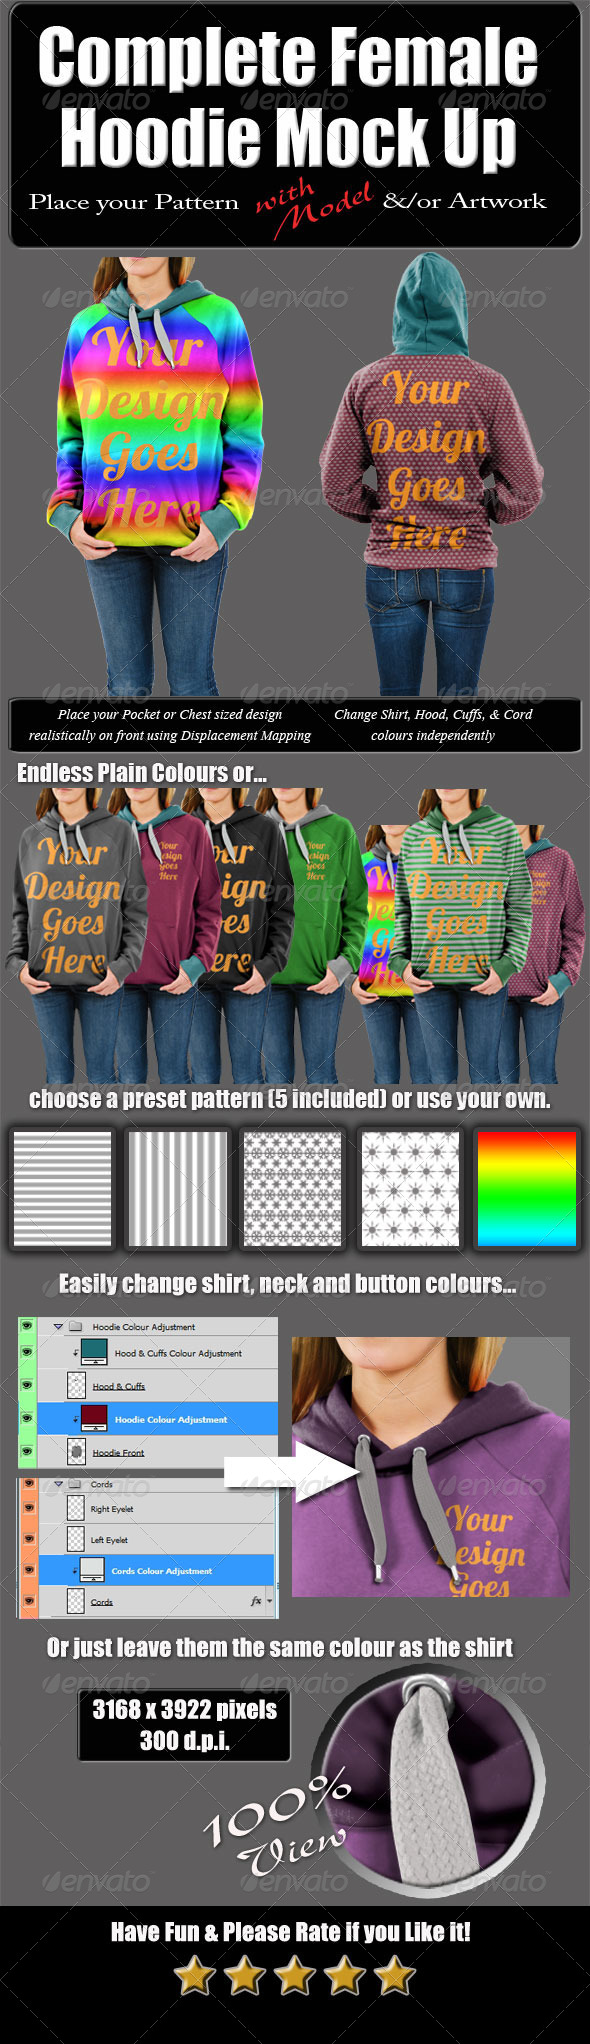 GraphicRiver Complete Female Hoodie Mock Up with Model 5296914